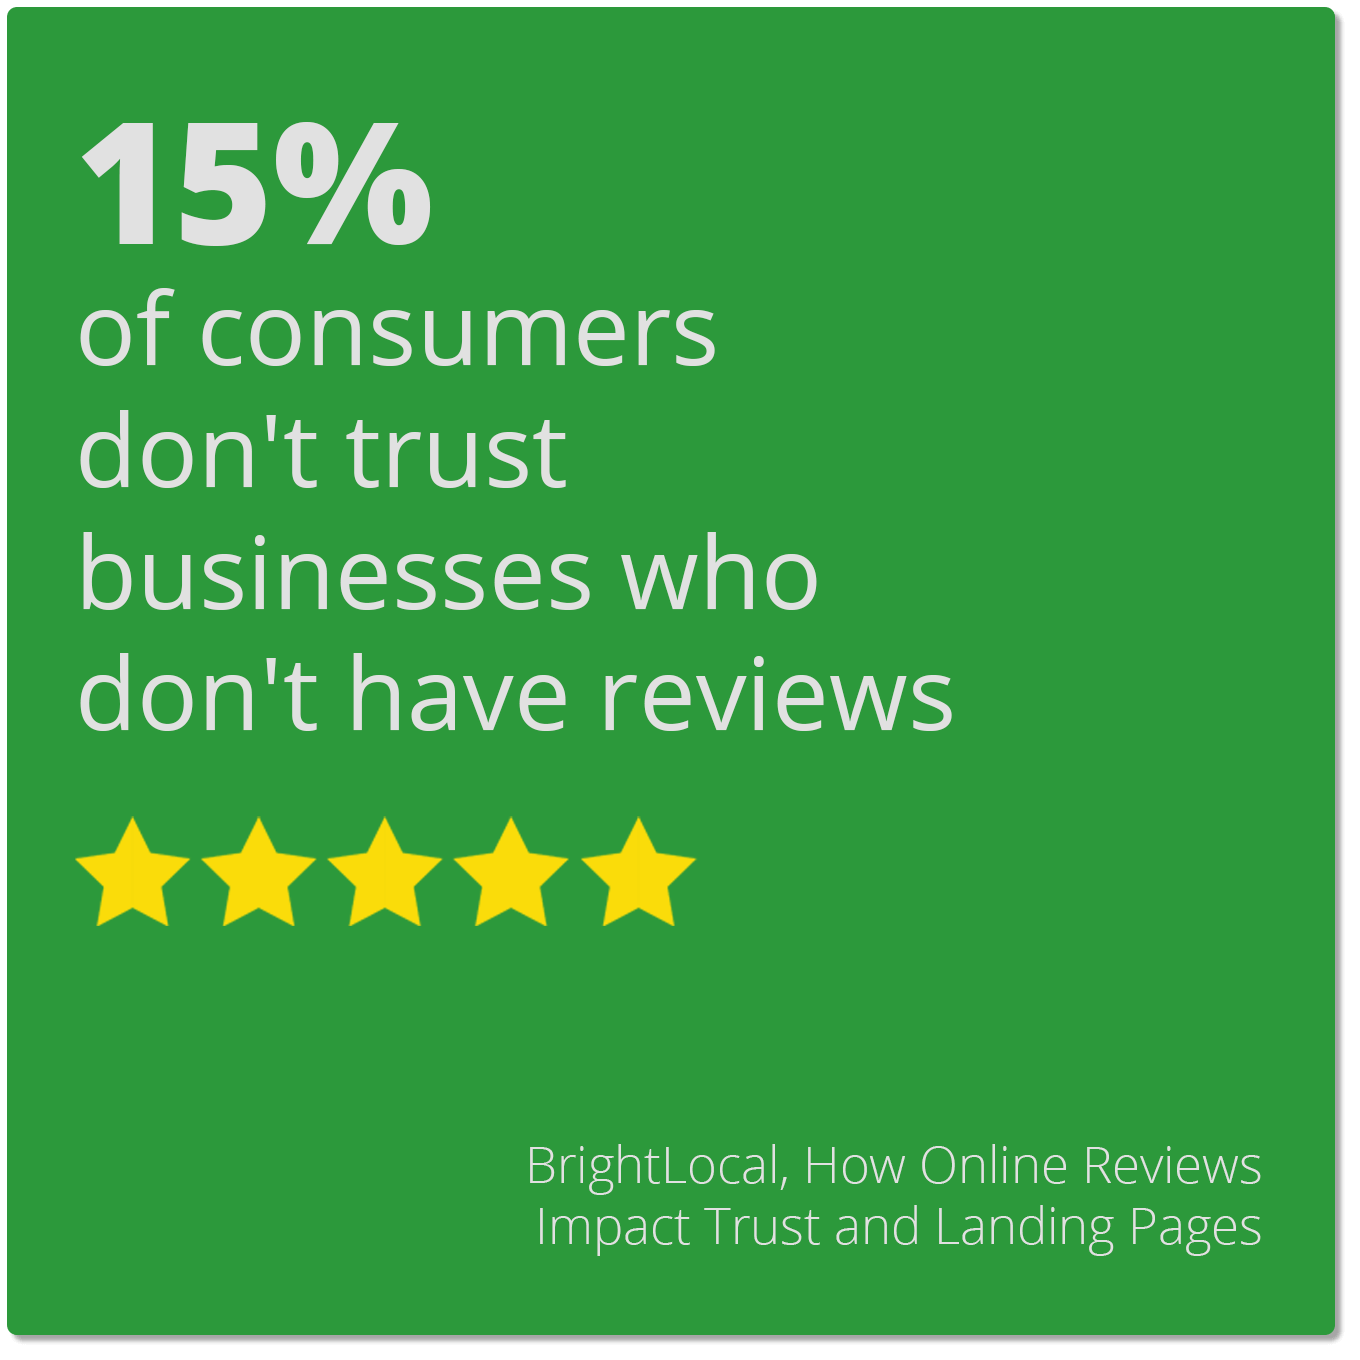 15% of consumers don't trust businesses who don't have reviews